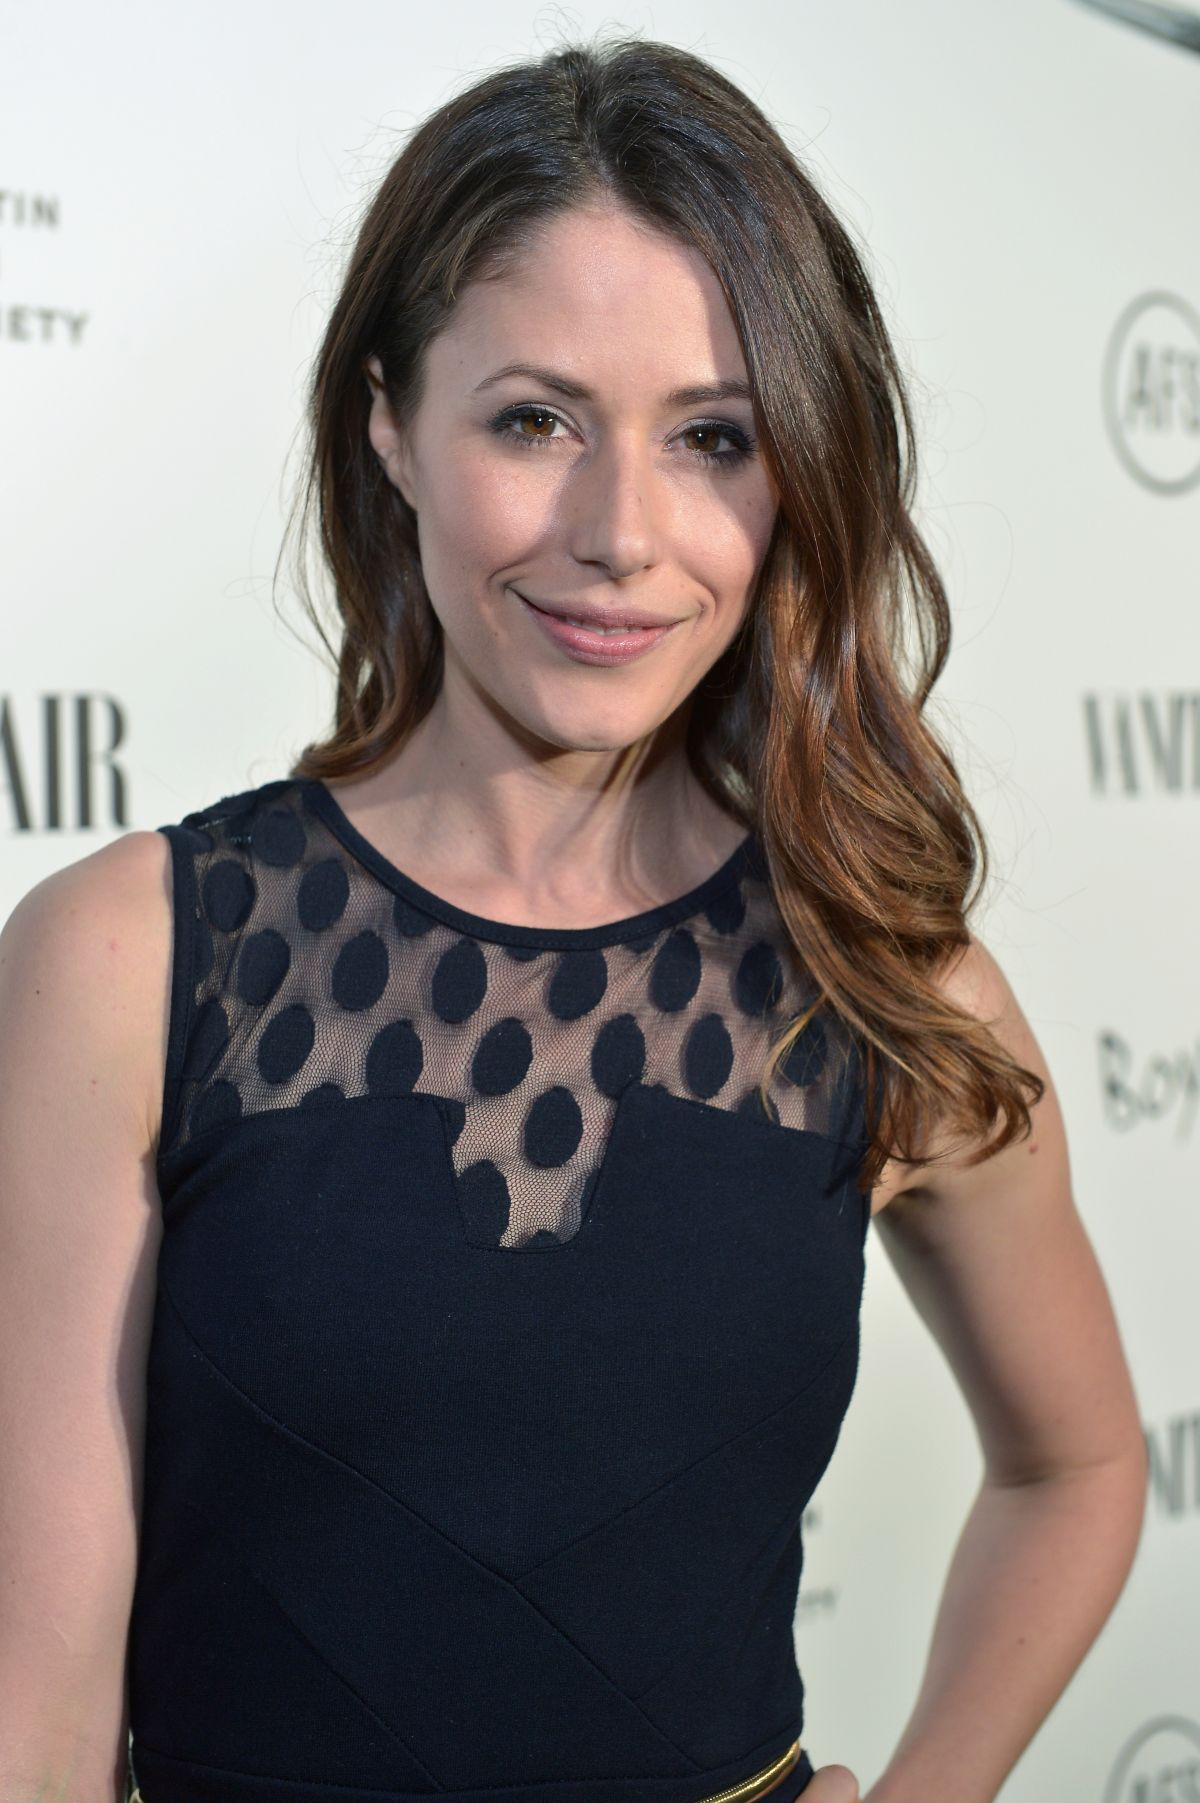 AMANDA CREW at Vanity Fair and Chrysler Celebration of Richard Linklater and Boyhood in Los Angeles